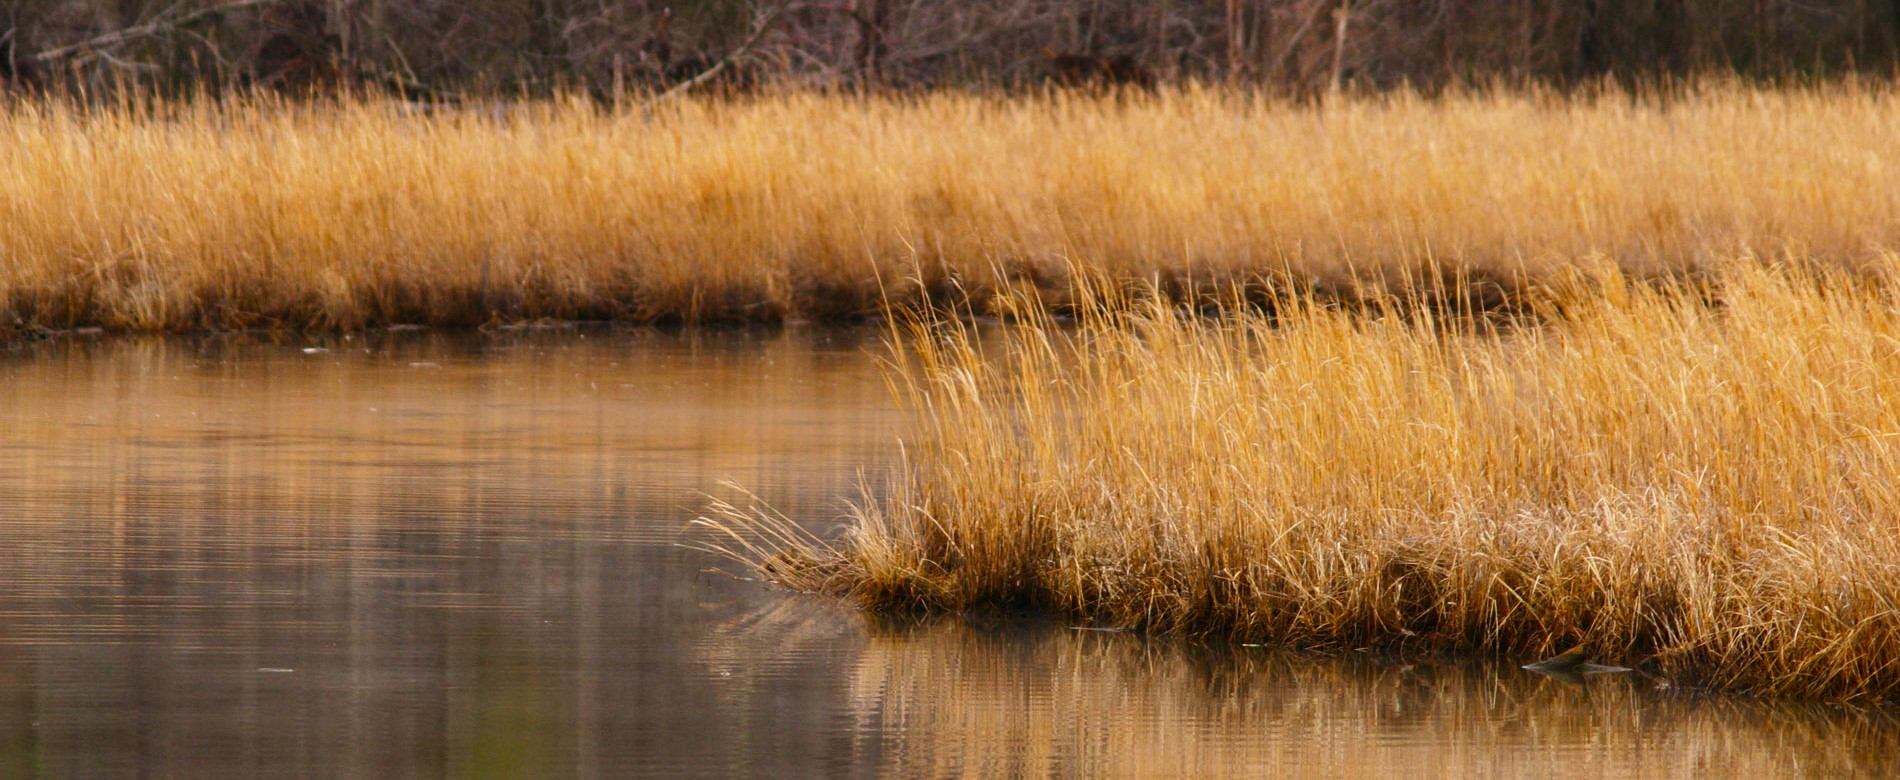 Parkers Creek Watershed Nature Preserve